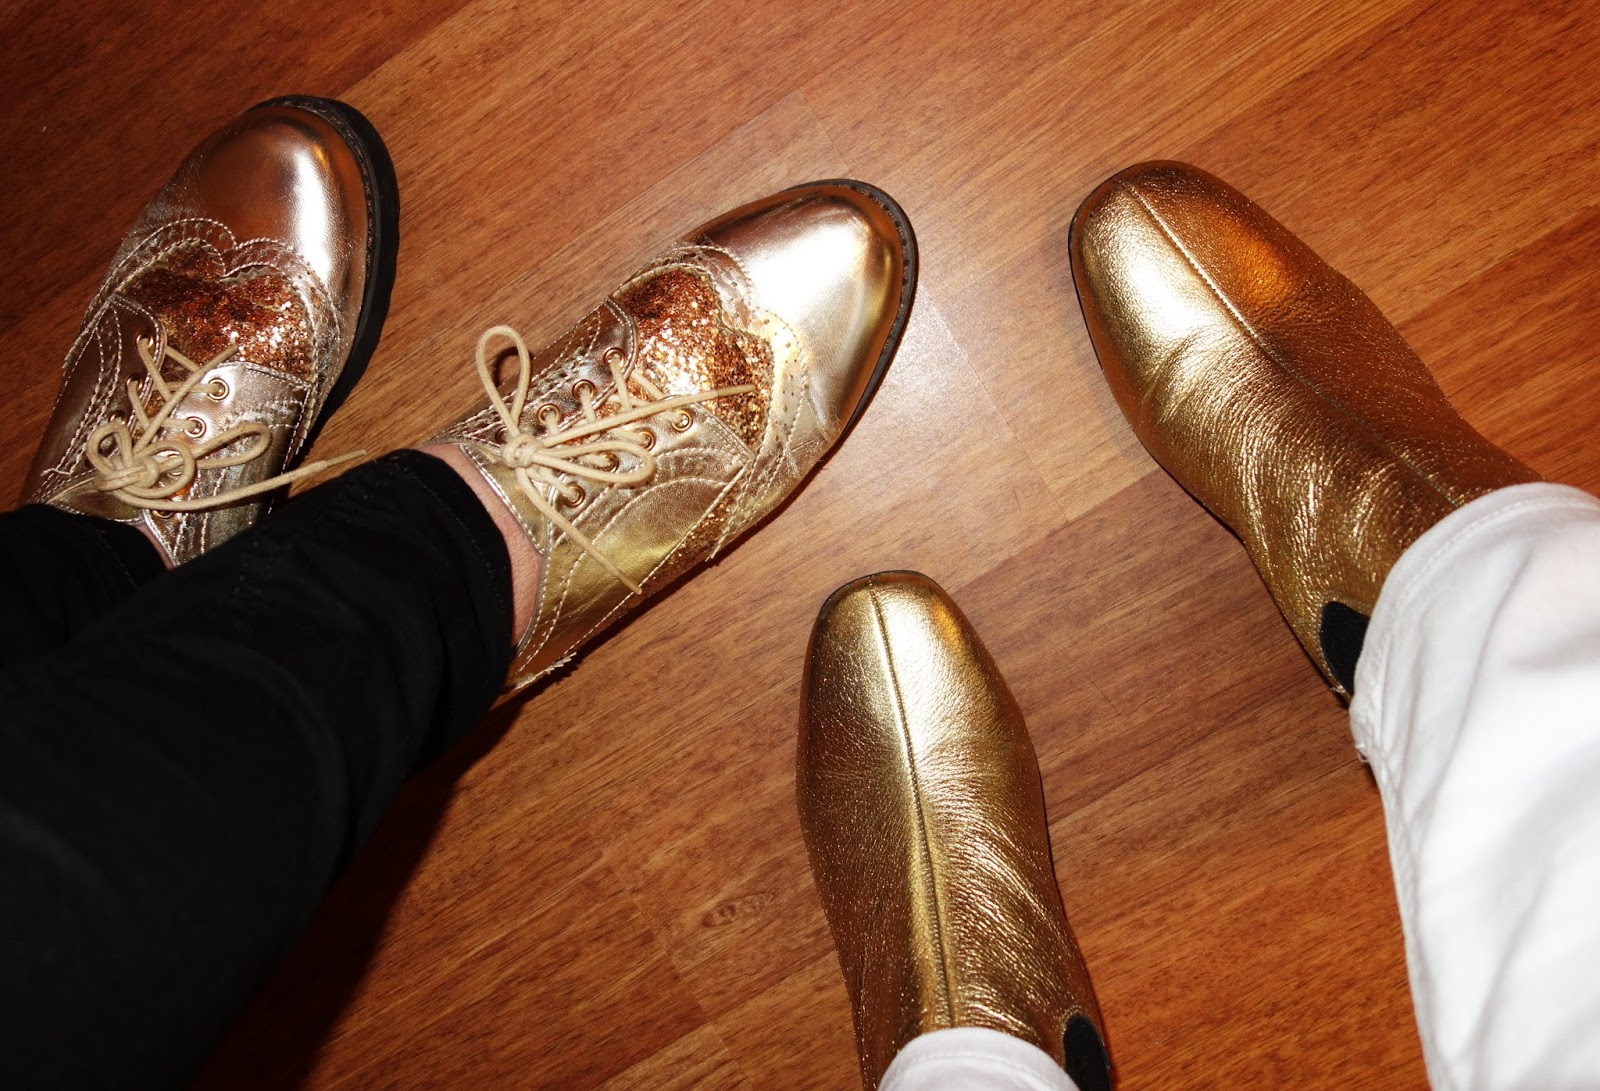 Two pairs of metallic shoes for a 70s rock gig